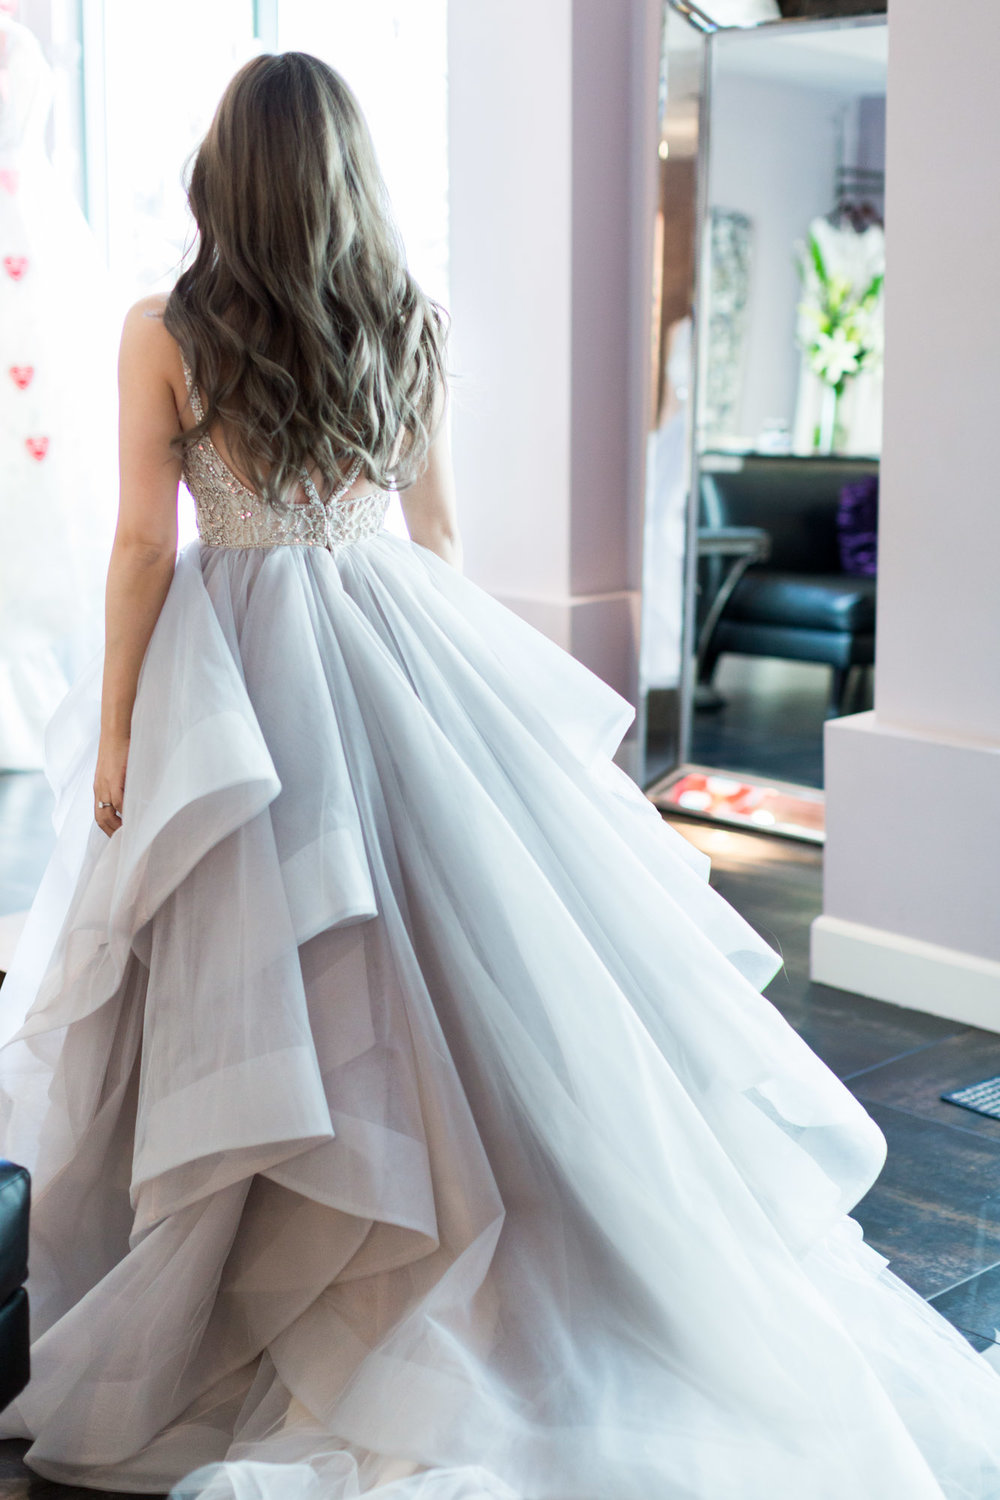 Wedding Planning || A Fashion Blogger's Perspectives on Bridal Gown Trying-On